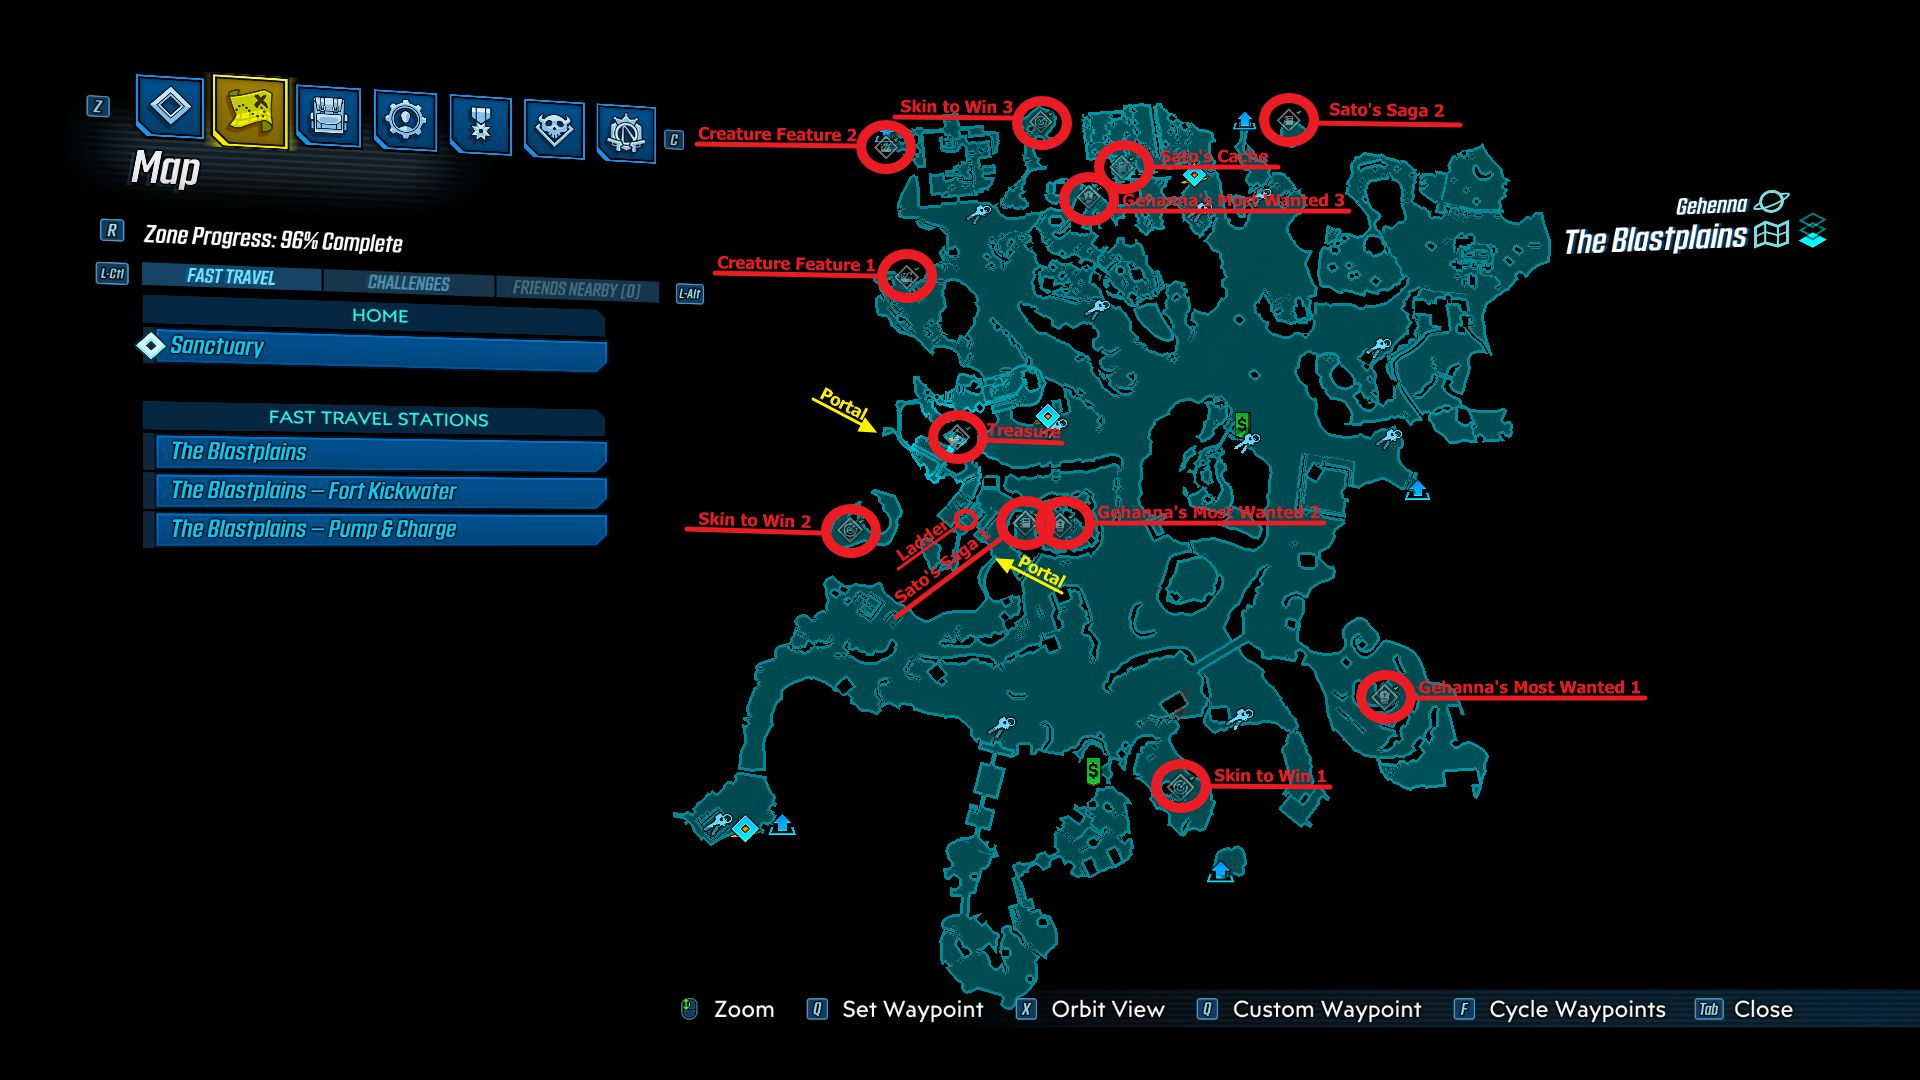 Image showing a map of the locations of The Blastplains Crew Chalenges in the Borderlands 3 Bounty of Blood DLC.